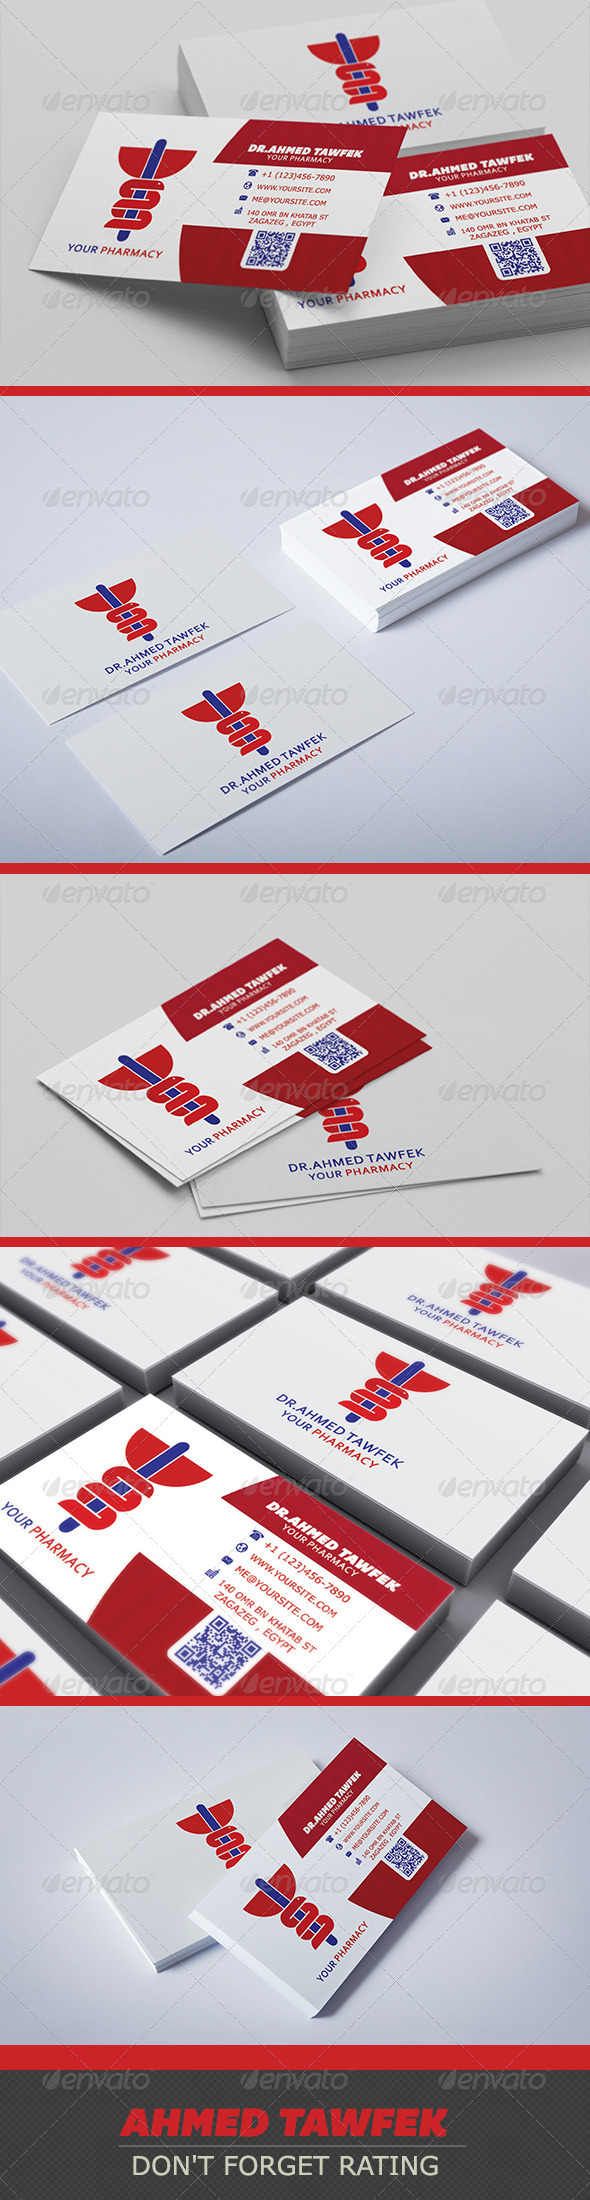 GraphicRiver Pharmacy Business Card 3925636